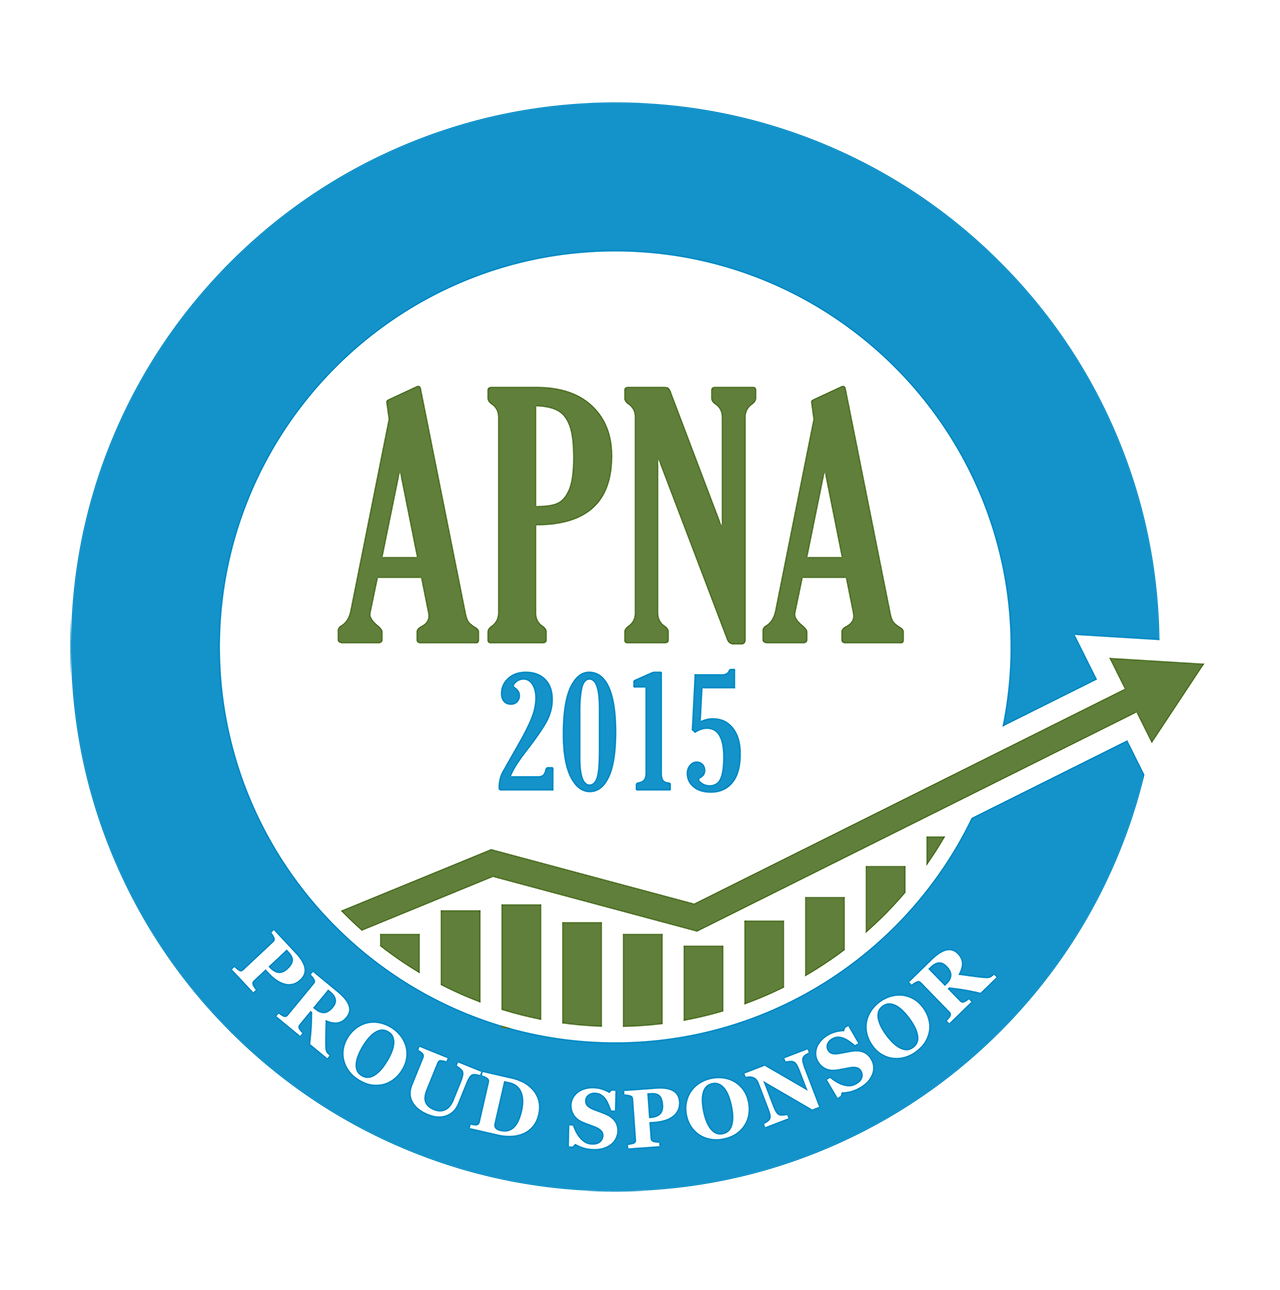 APNA_Conference_Logo_Final-03 copy